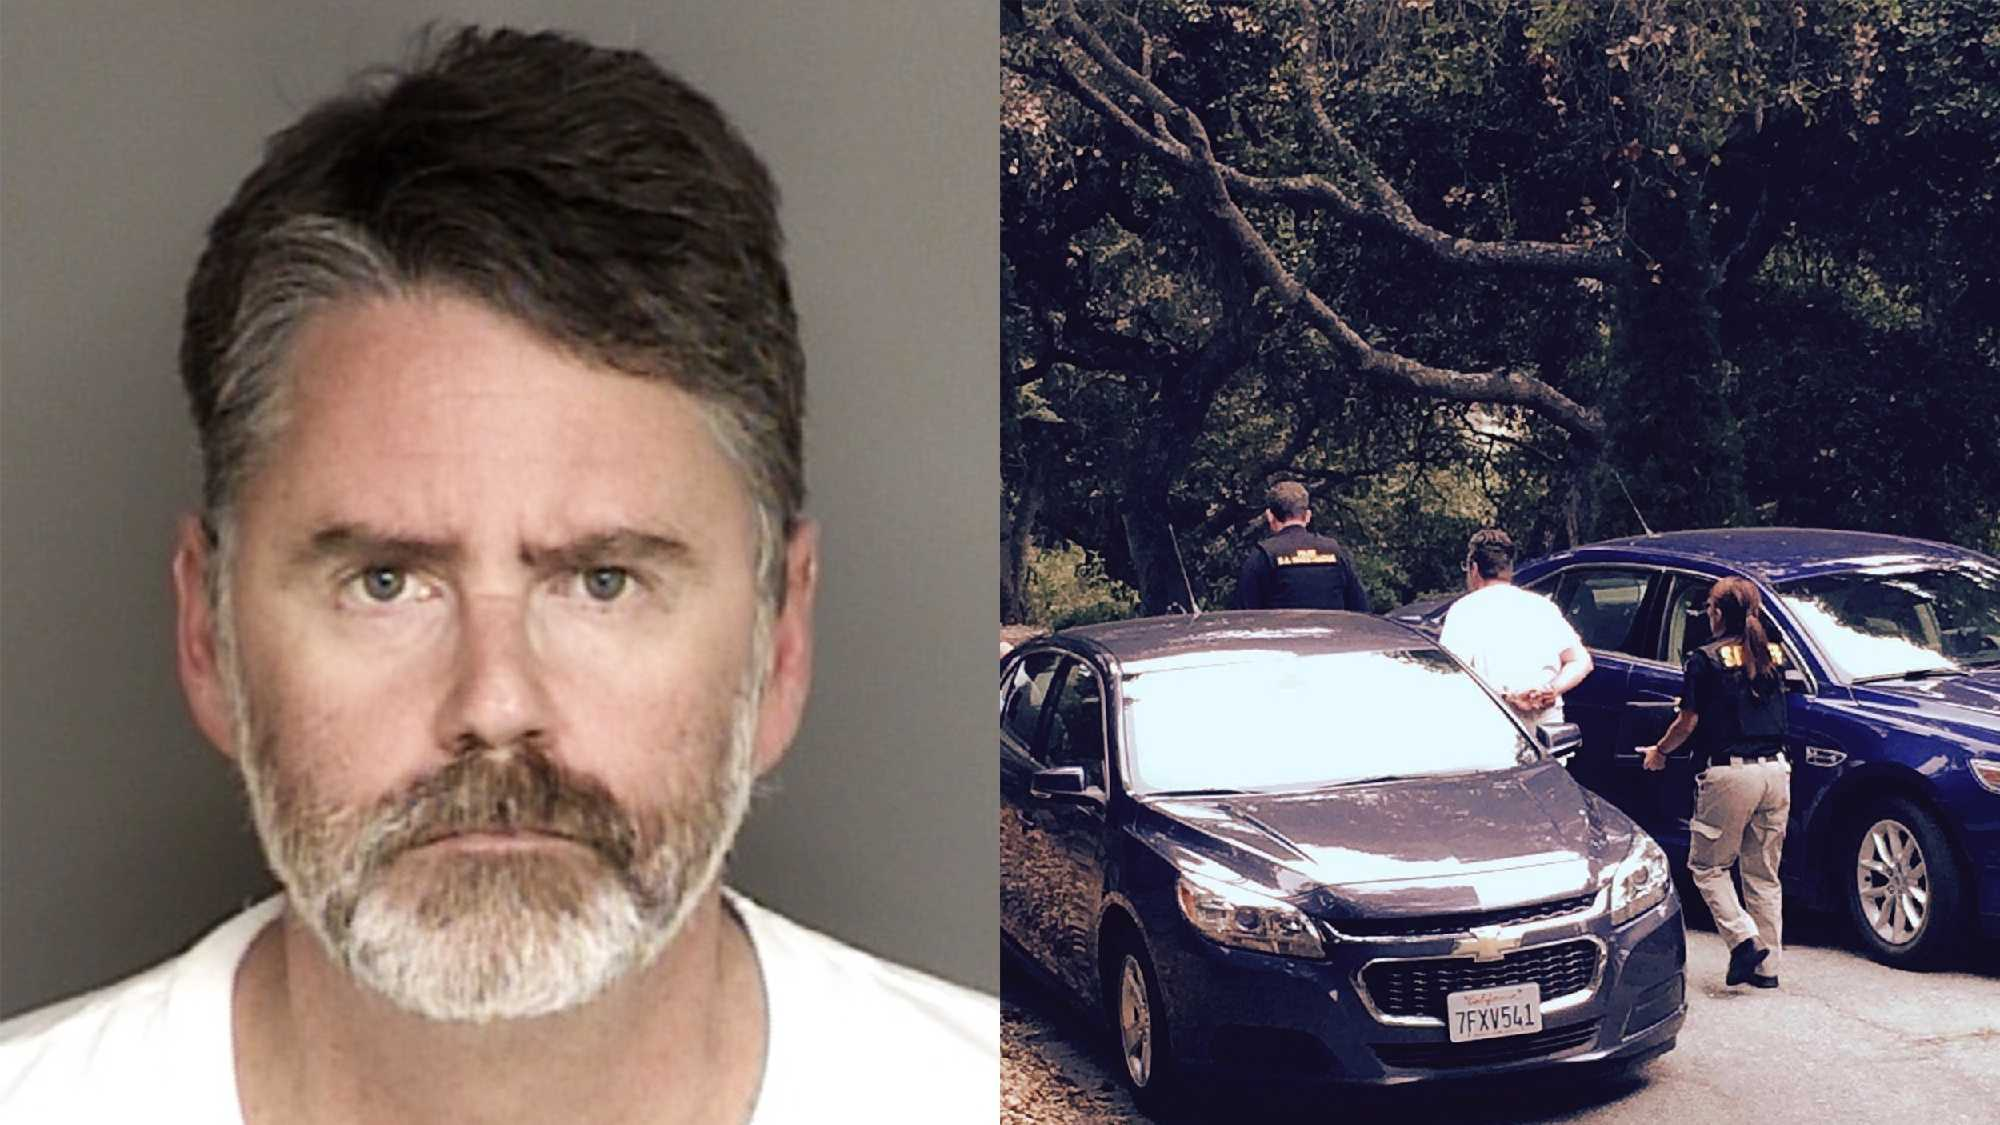 Eric Dennis Norrby is seen in a mug shot, left, and during his arrest, right.